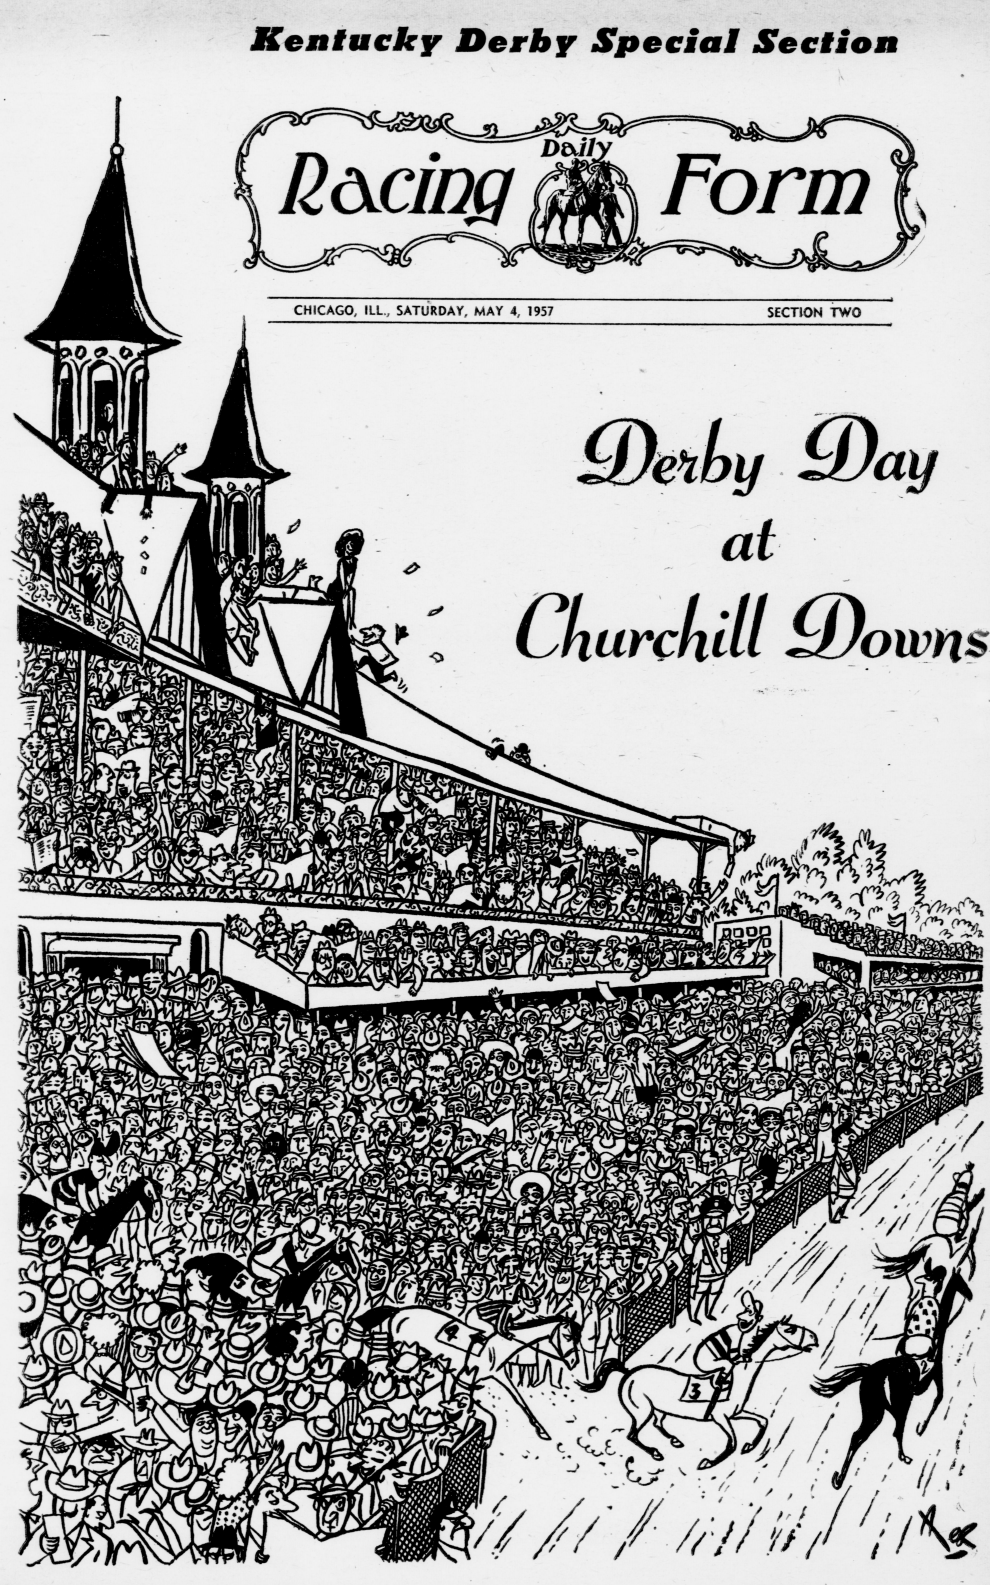 Derby Day At Churchill Downs, Daily Racing Form, 1957 05 04